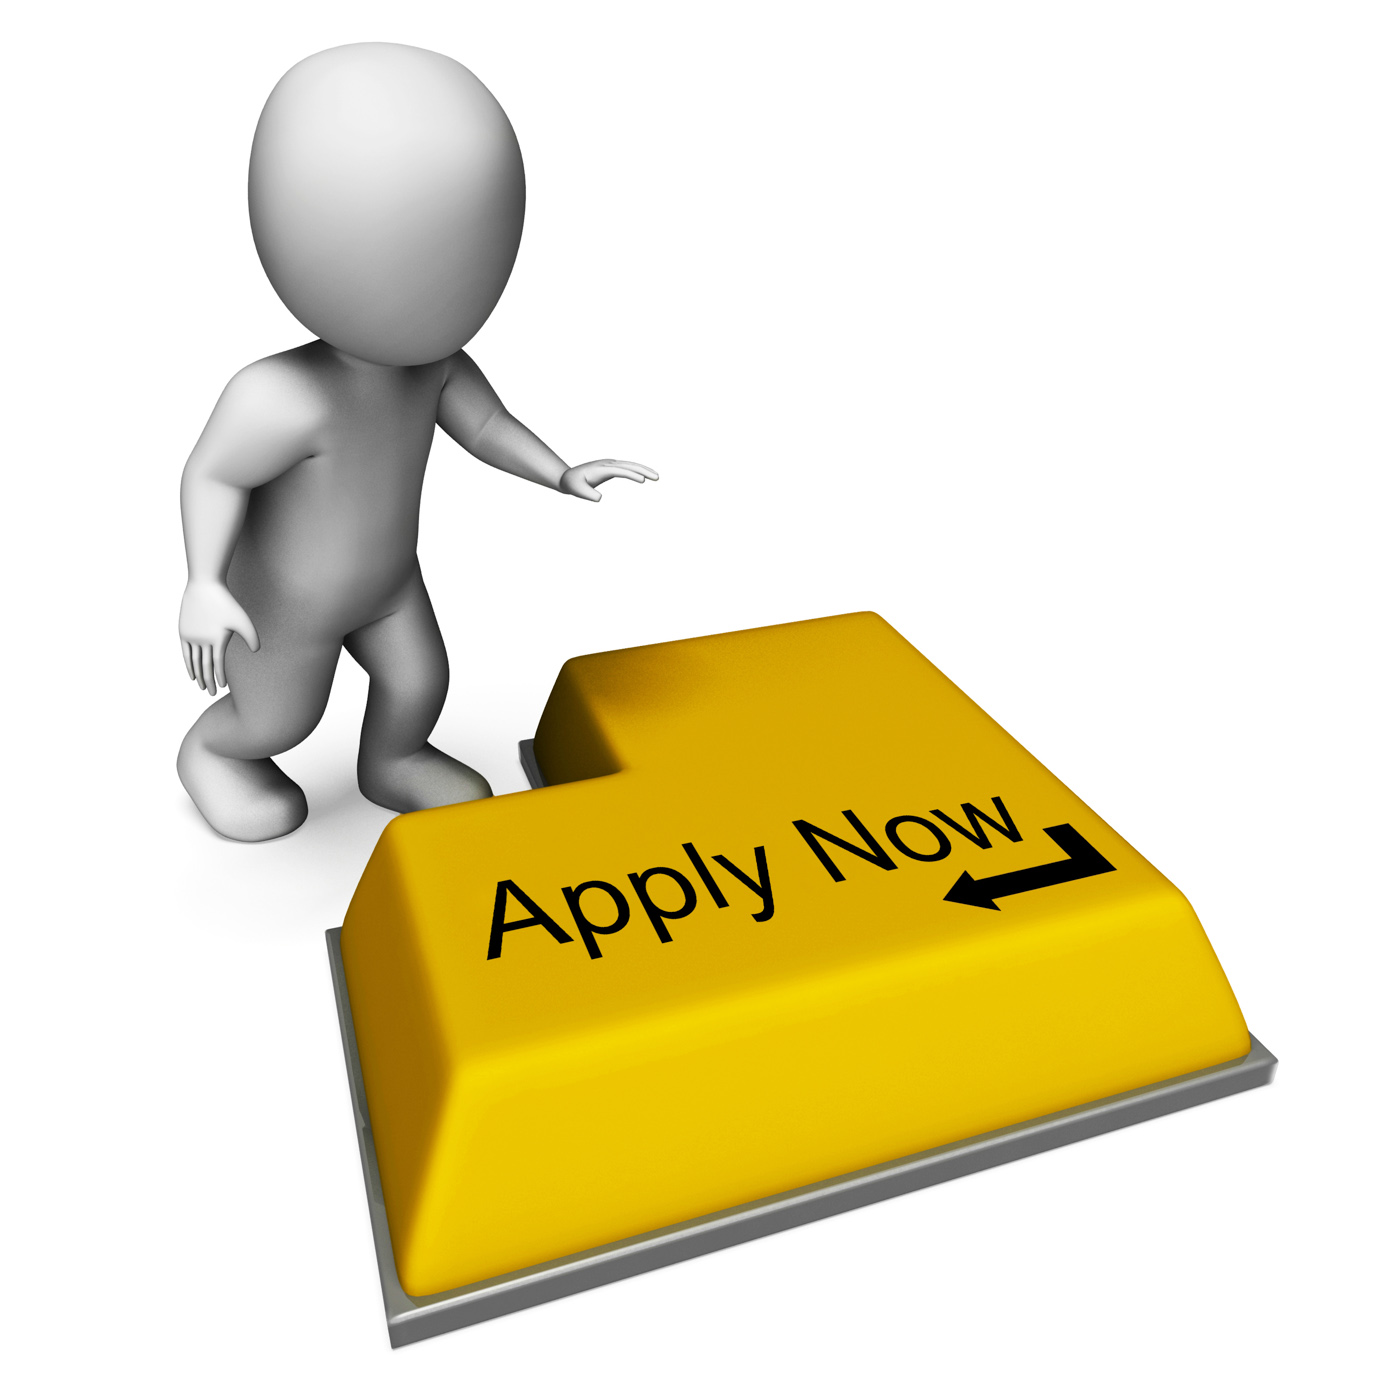 Apply Now Key Means Job Vacancy And Recruitment, Jobopening, Web, Submitapplicatio, Recruitment, HQ Photo